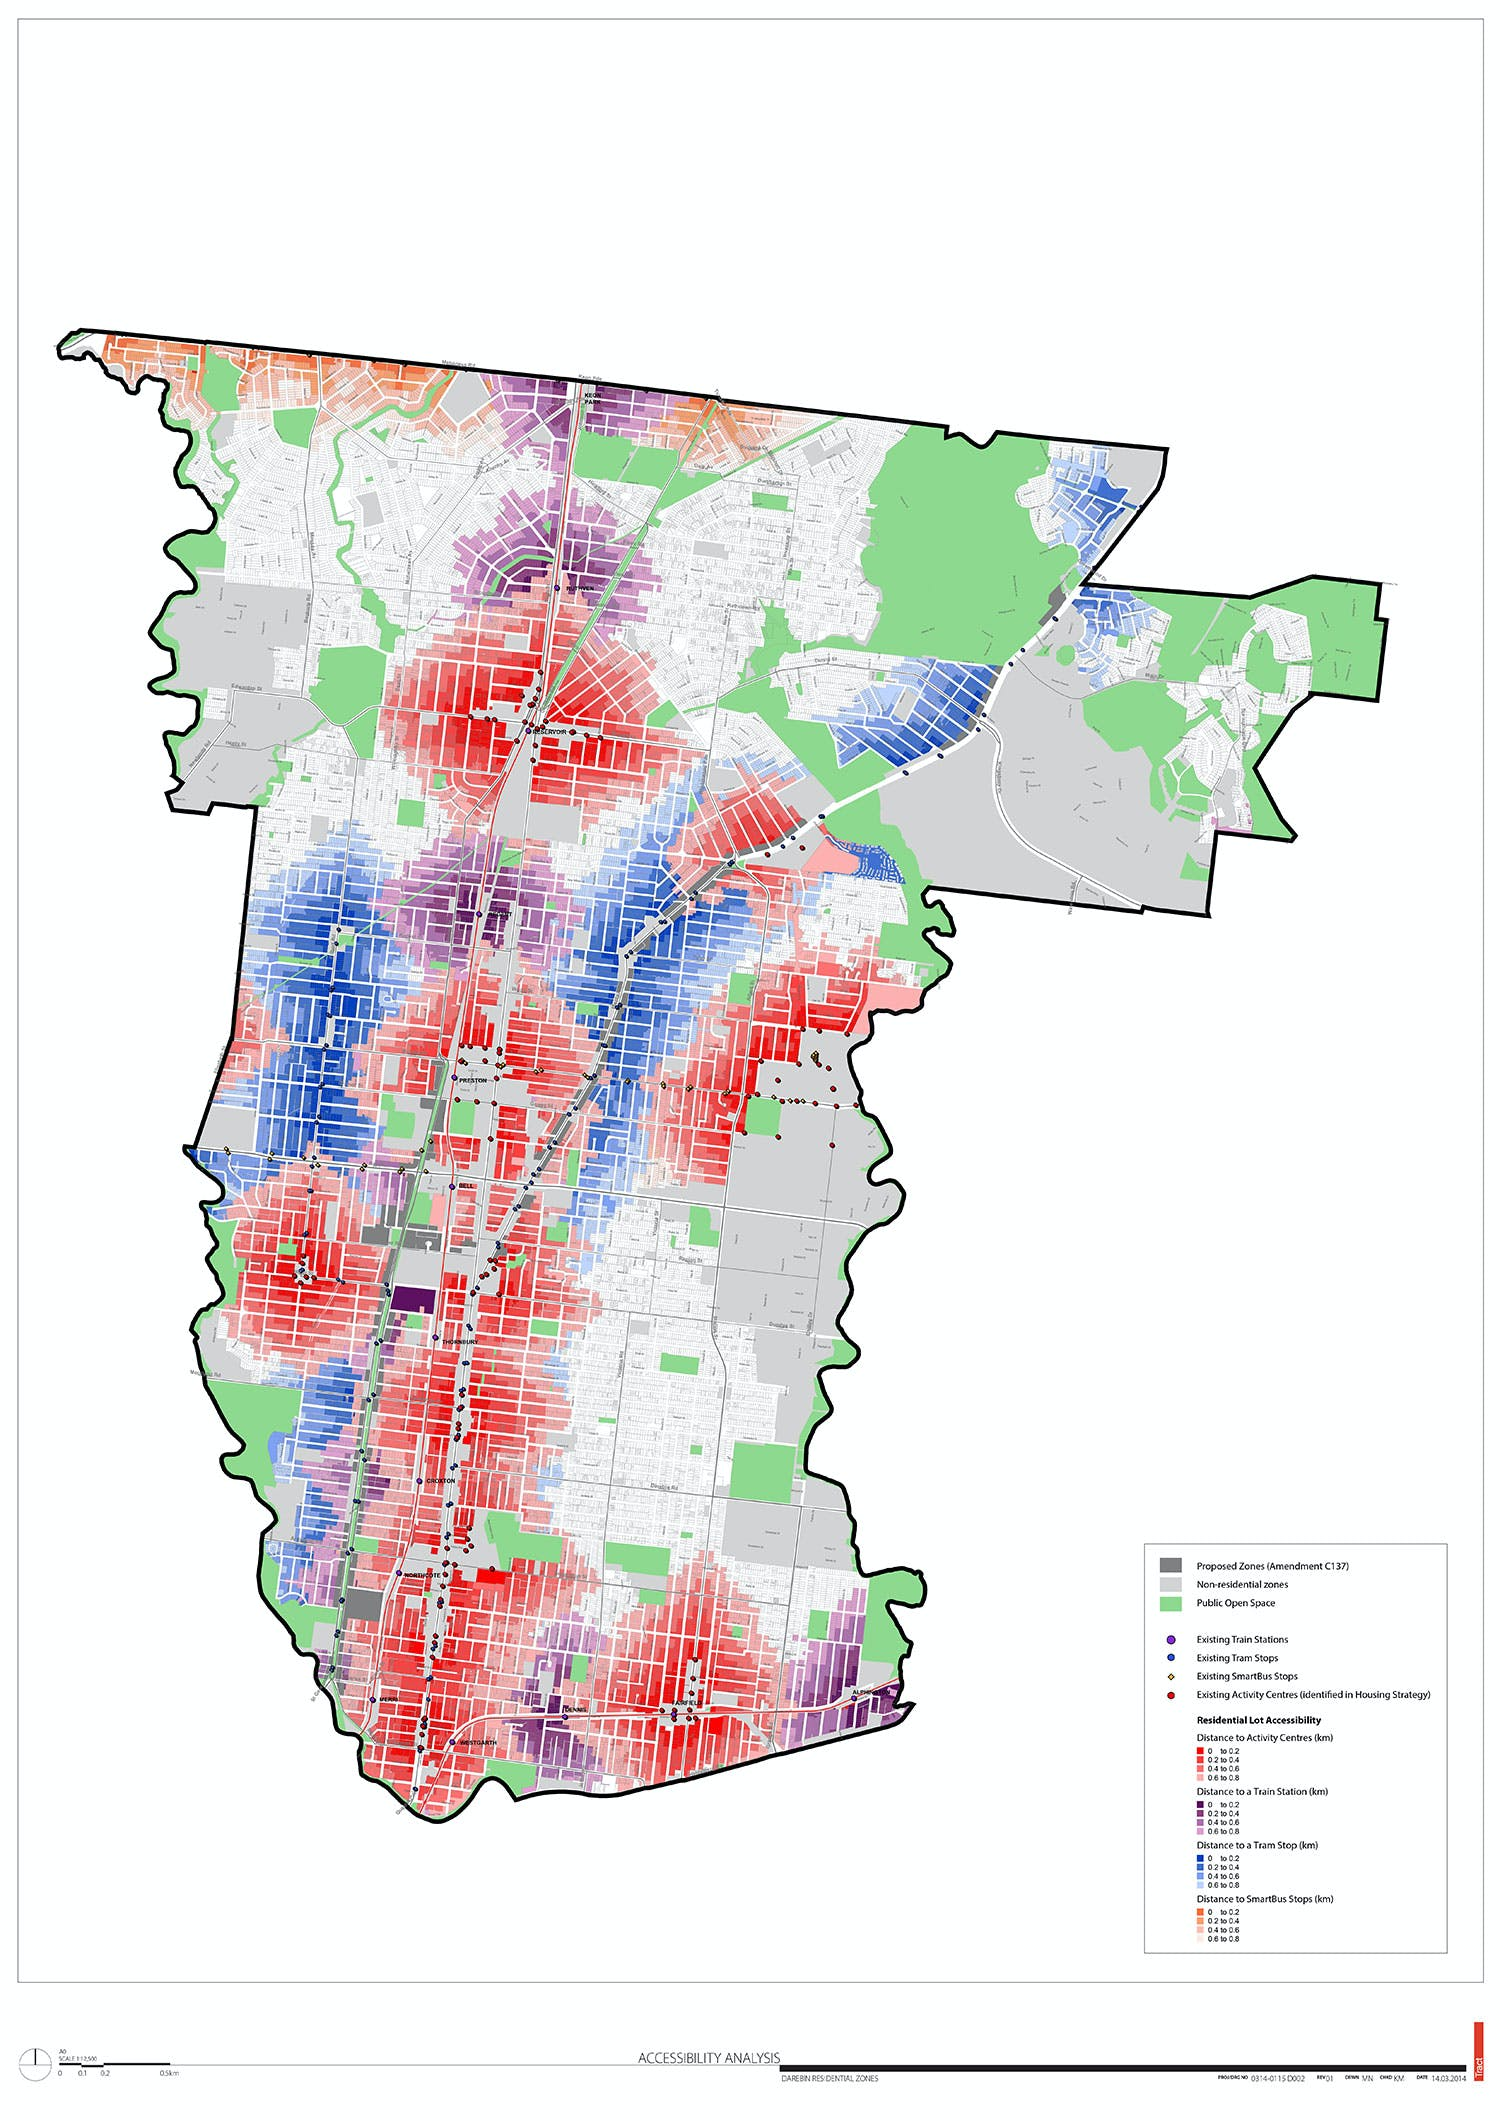 Accessibility Analysis (800m Walking Catchments from activity centres and major transport) Municipal Map